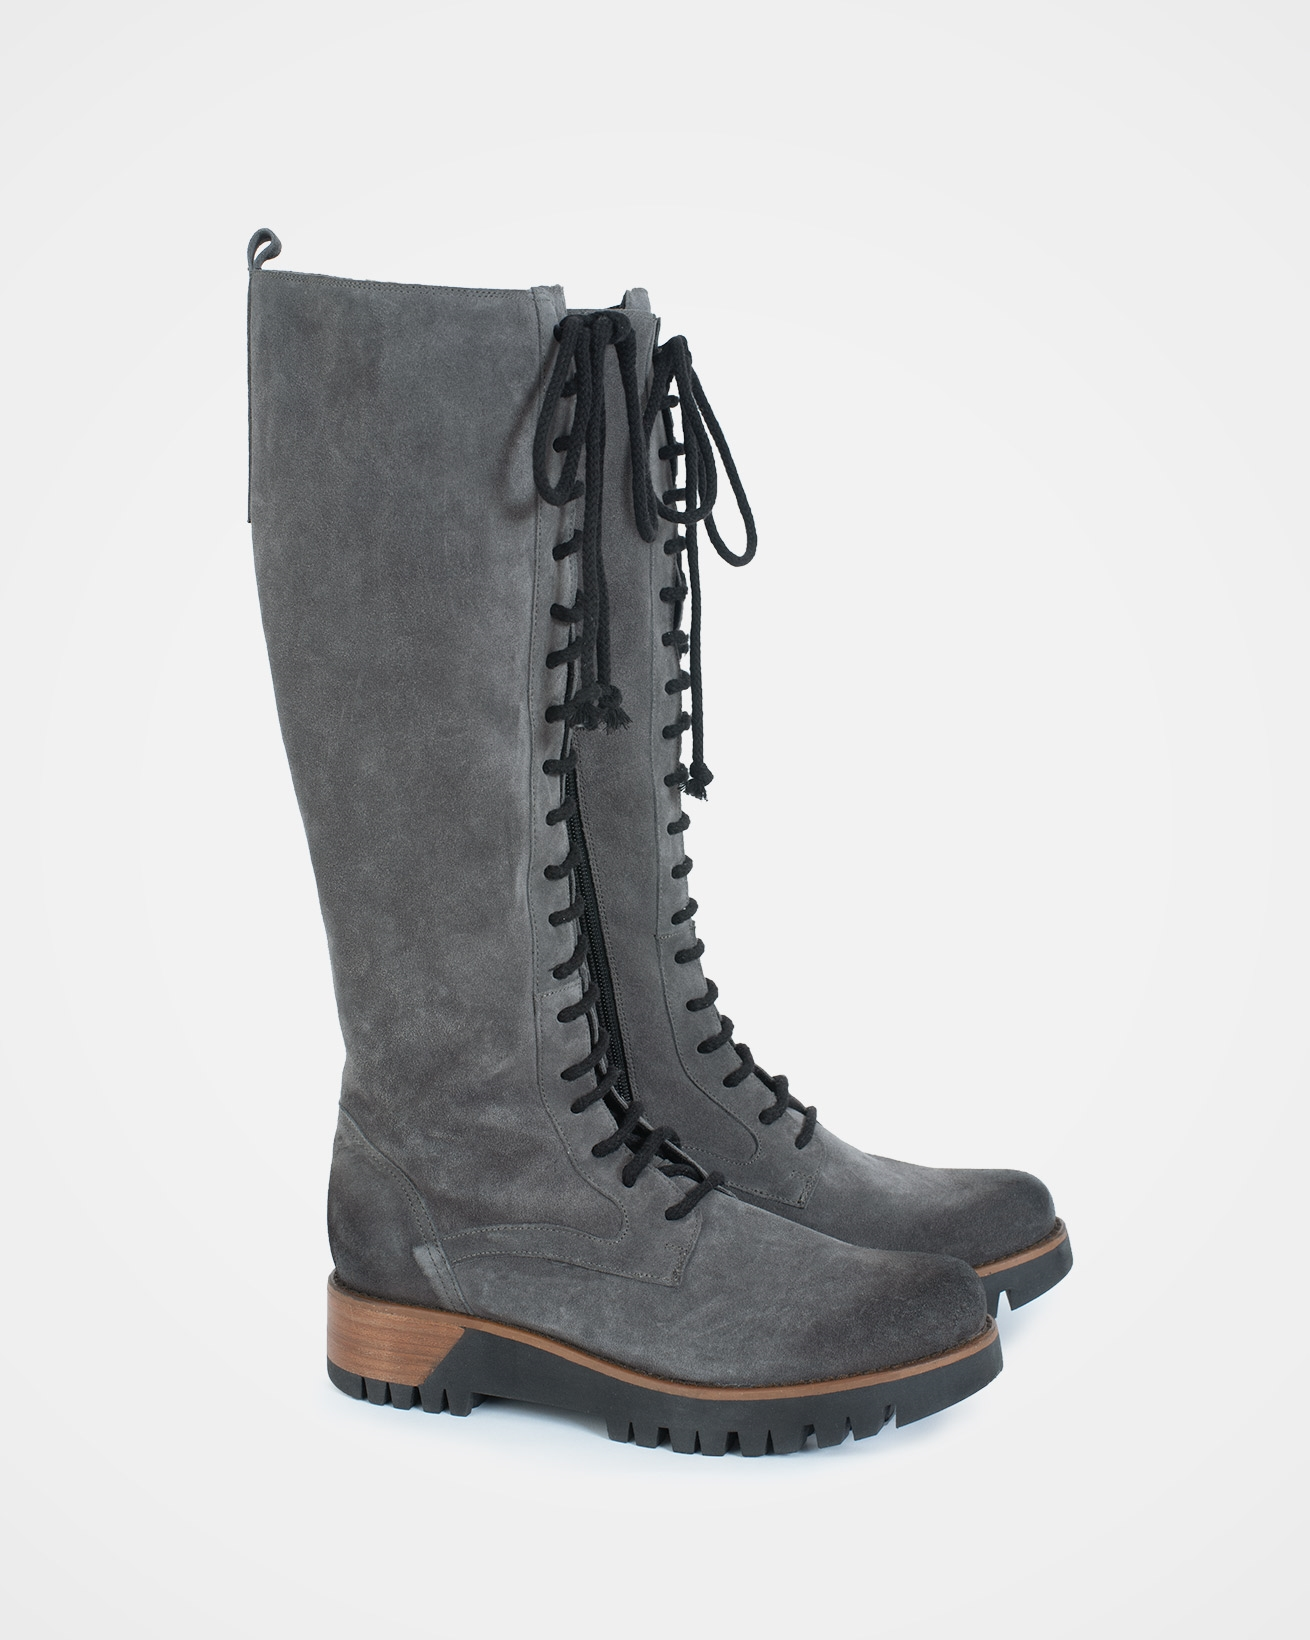 7638_wilderness-knee-boot_slate-grey_pair.jpg